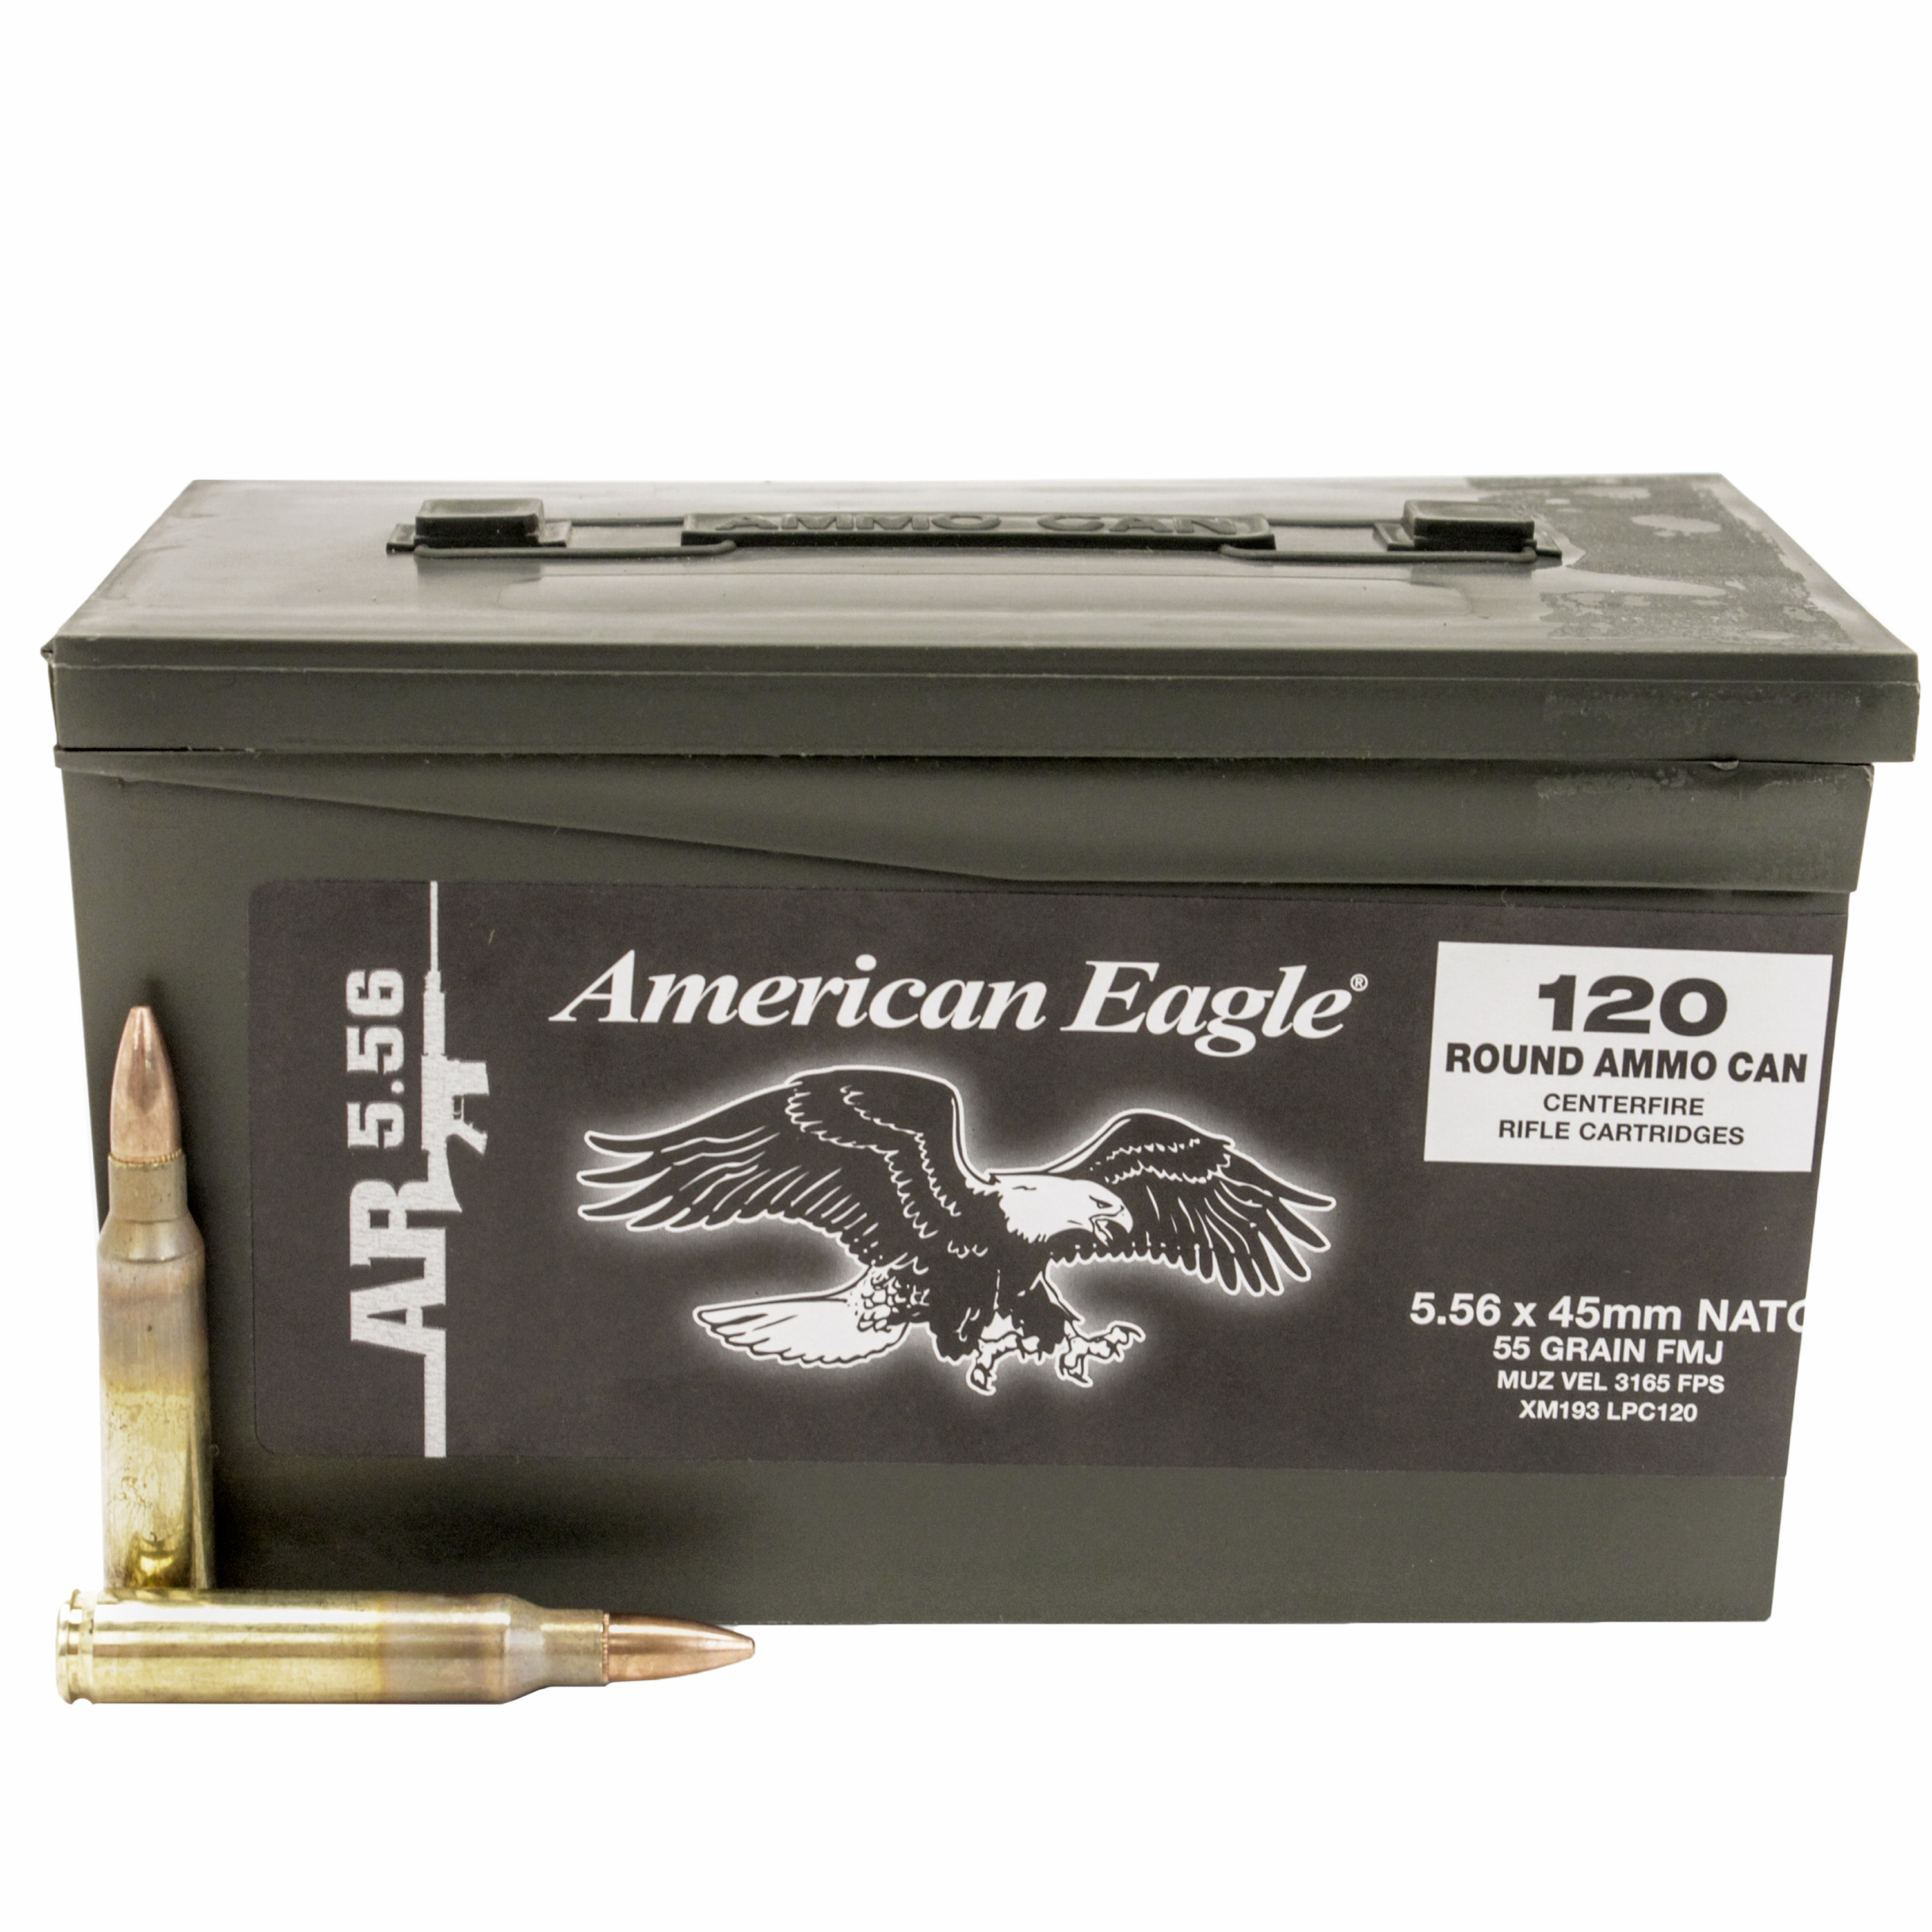 Federal Ammunition 5.56mm 55gr Ball M193 Mini Ammo Can